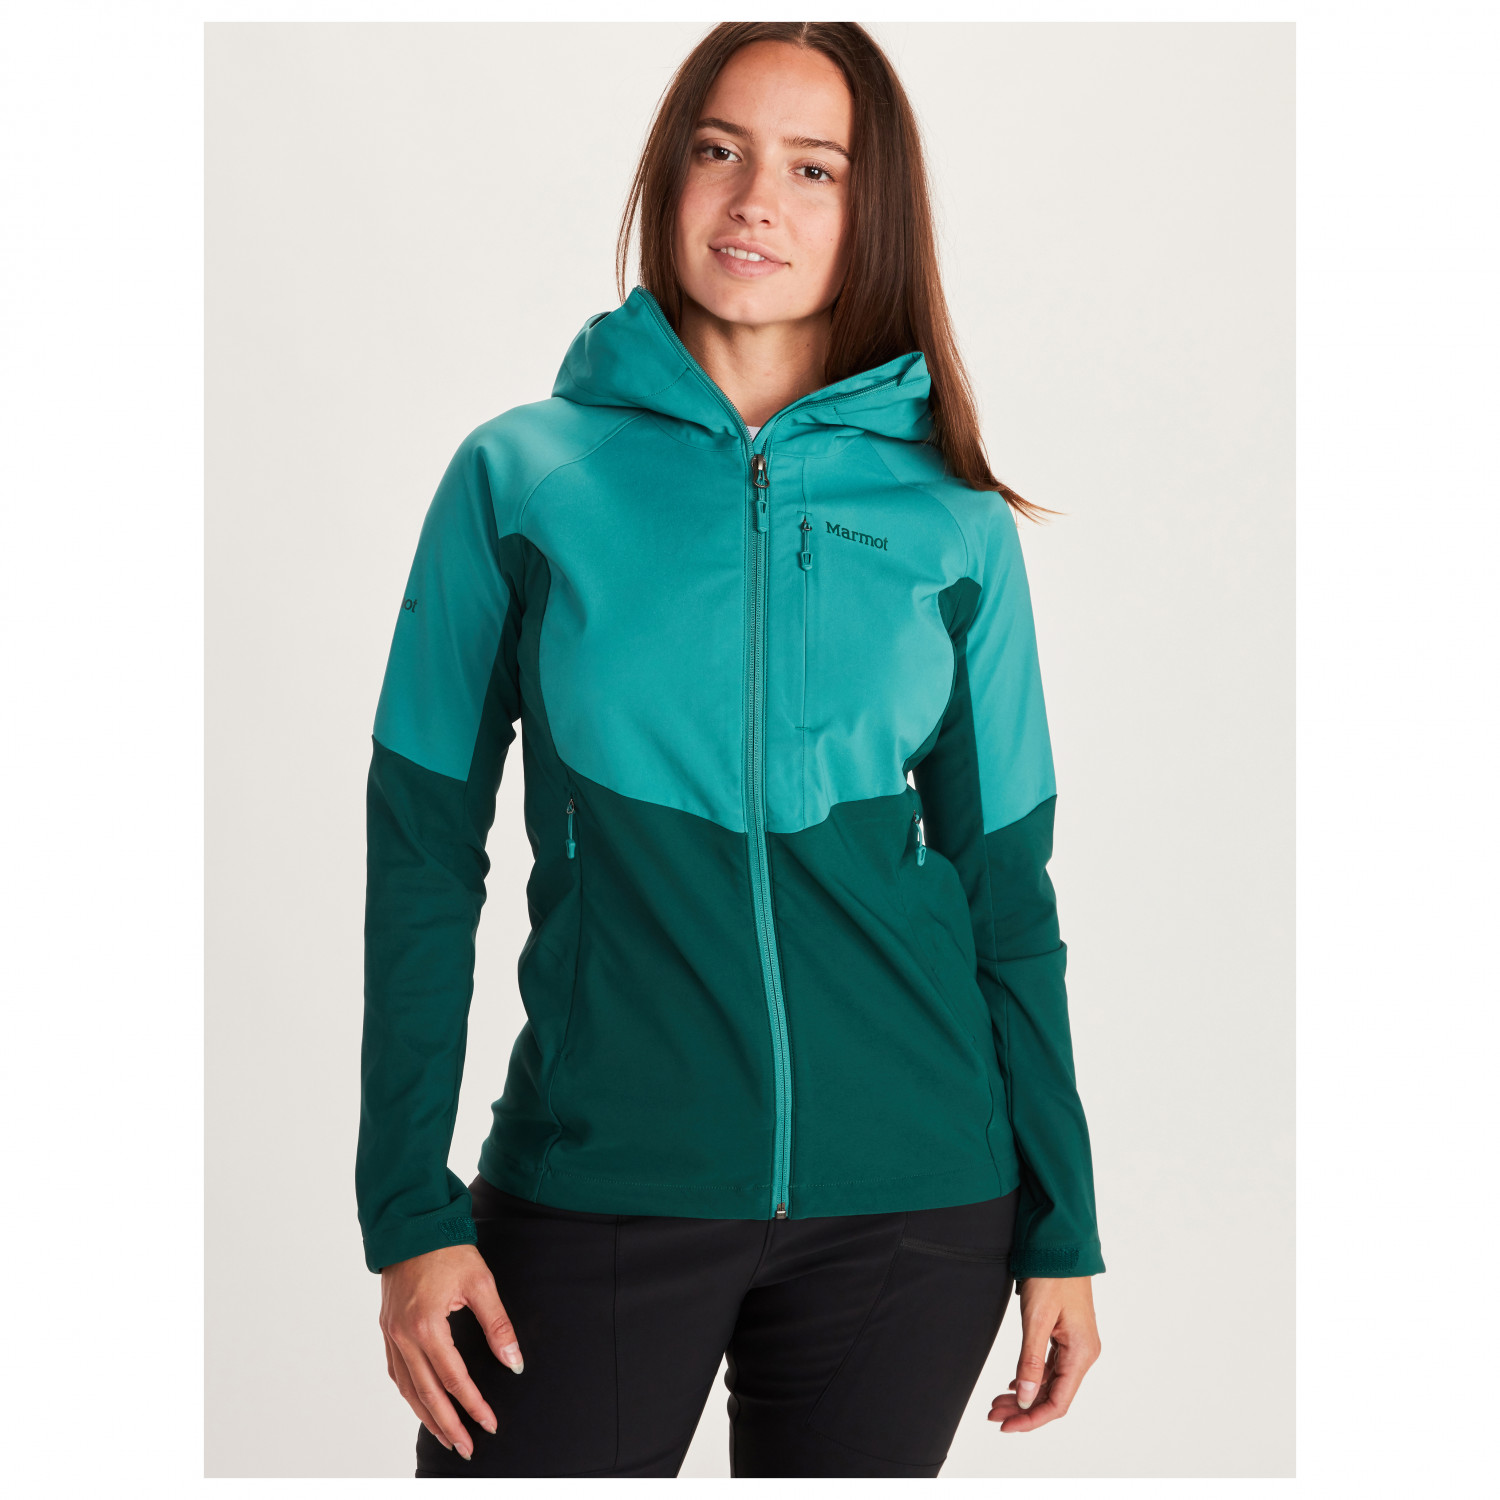 Softshell Jacket Marmot Wms Rom Jacket Breathable Water Repellent Anorak Outdoor Jacket